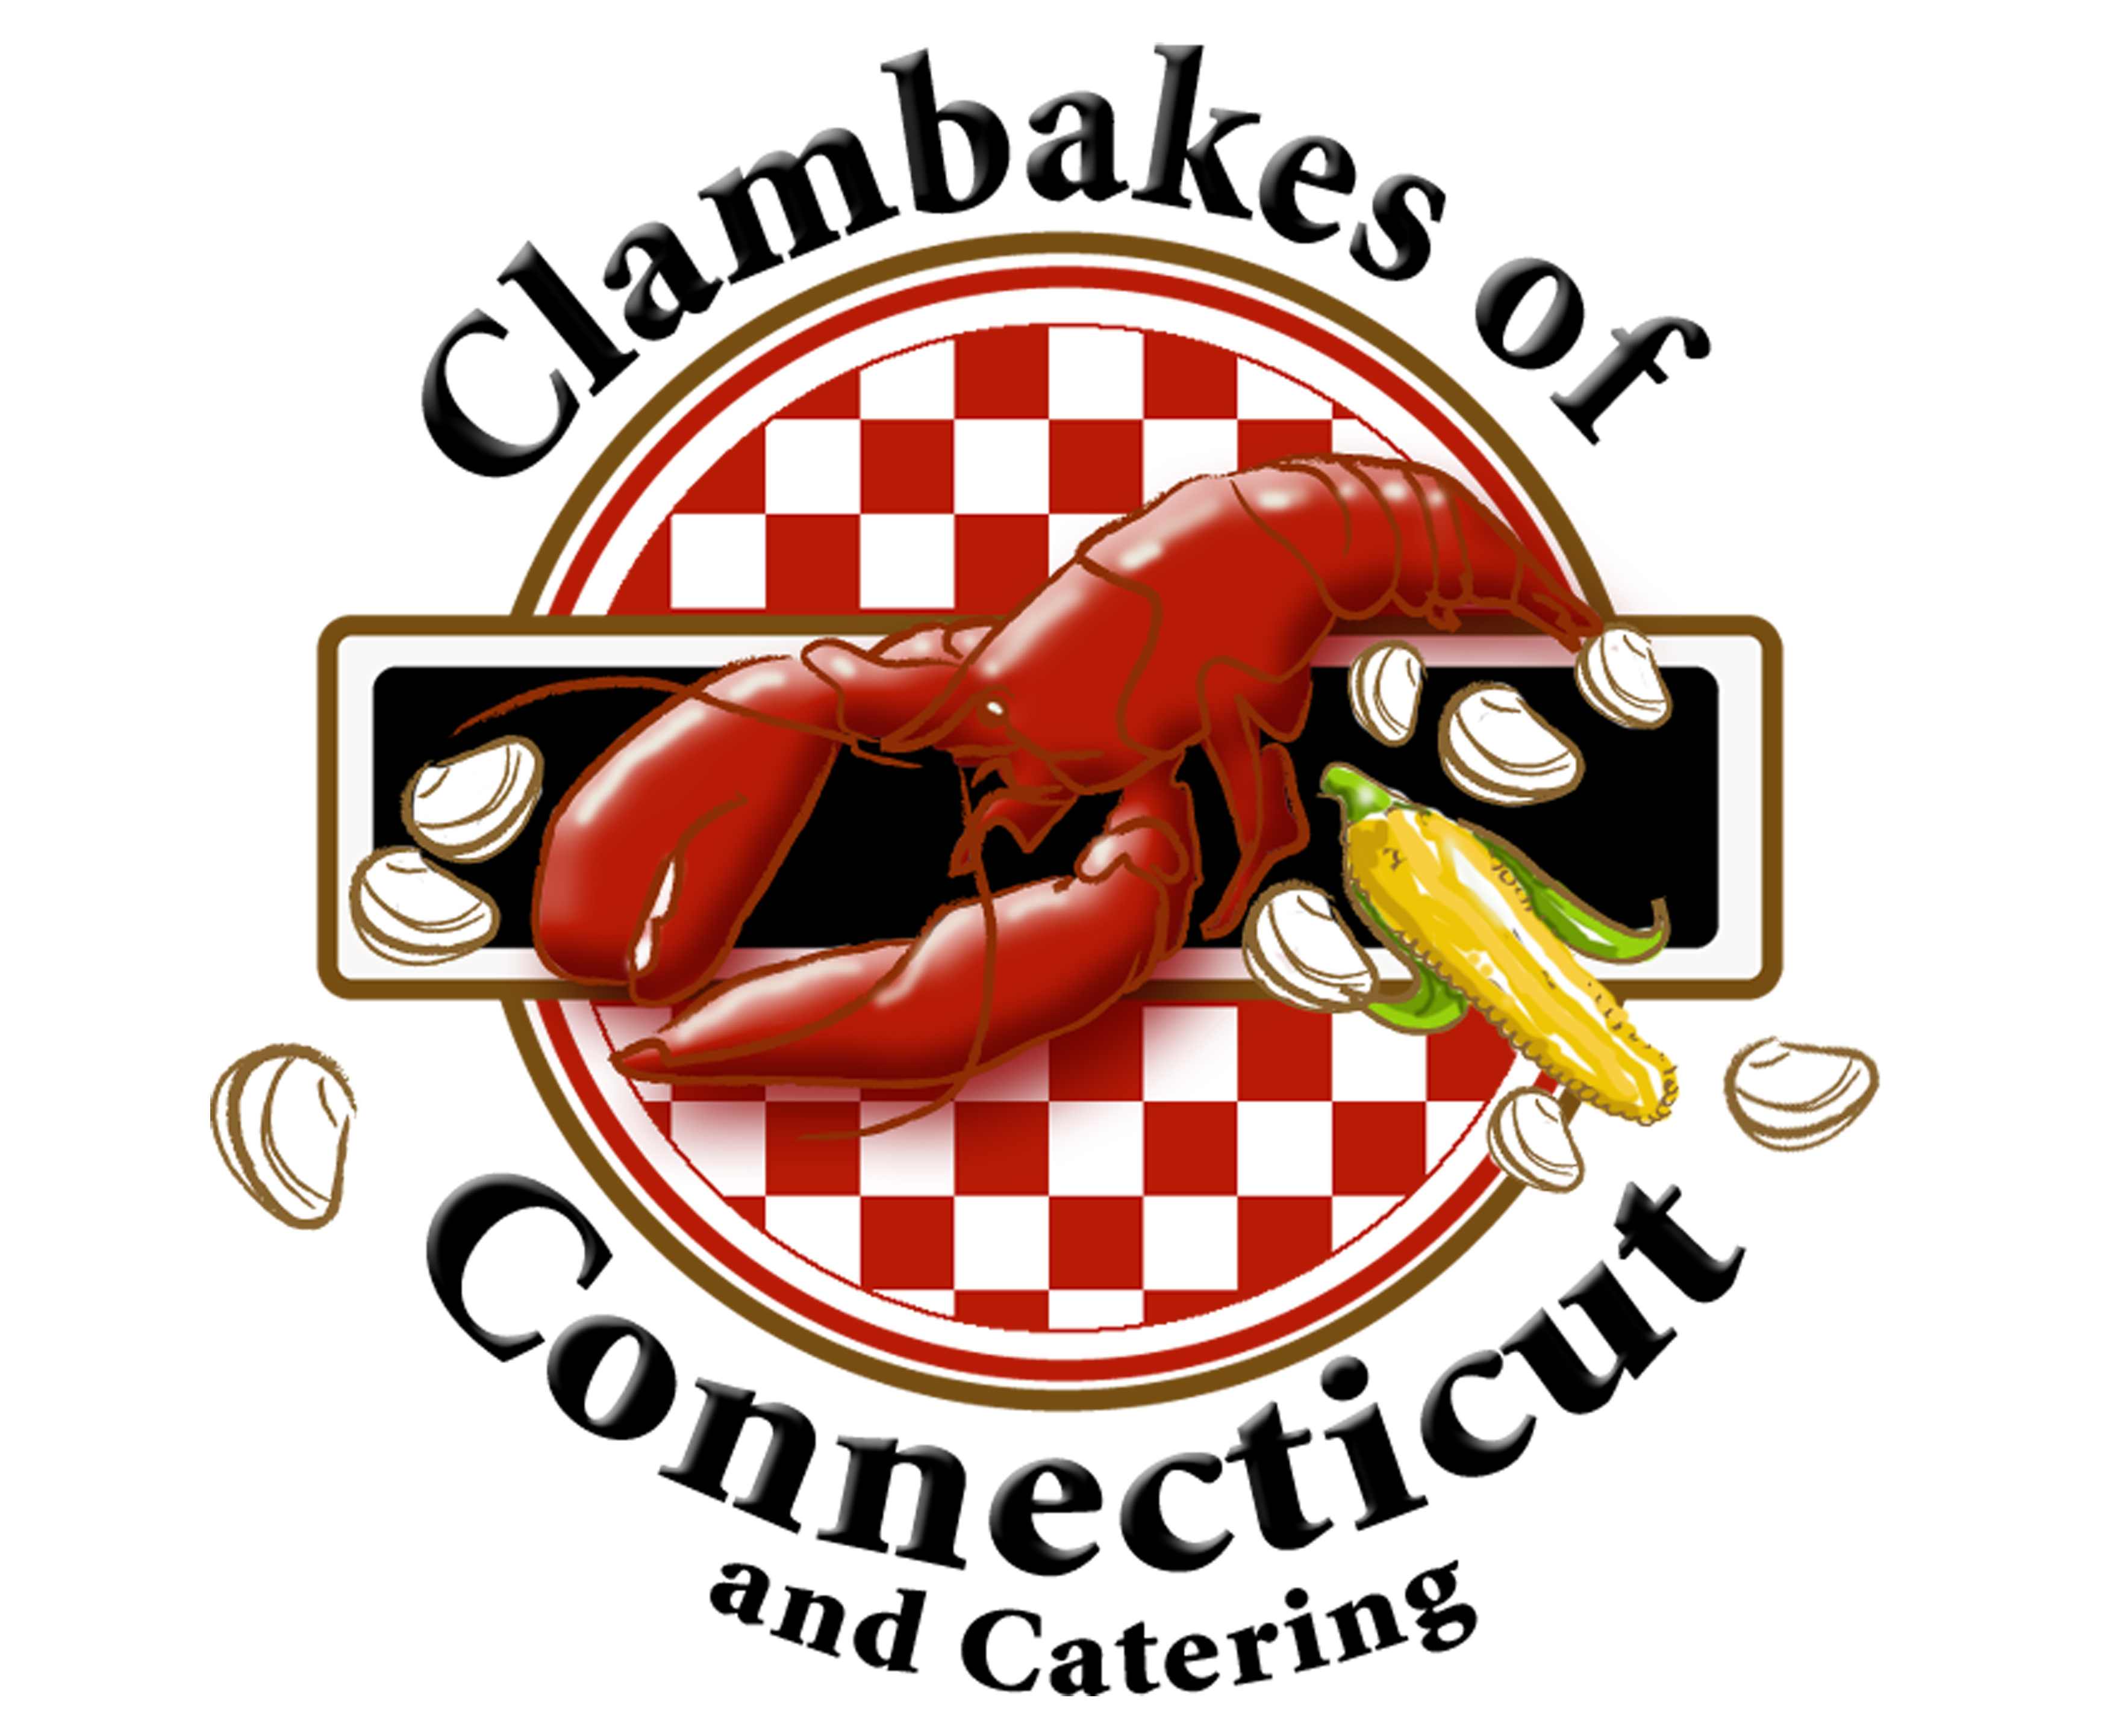 Clambakes of Connecticut & BBQ Photo